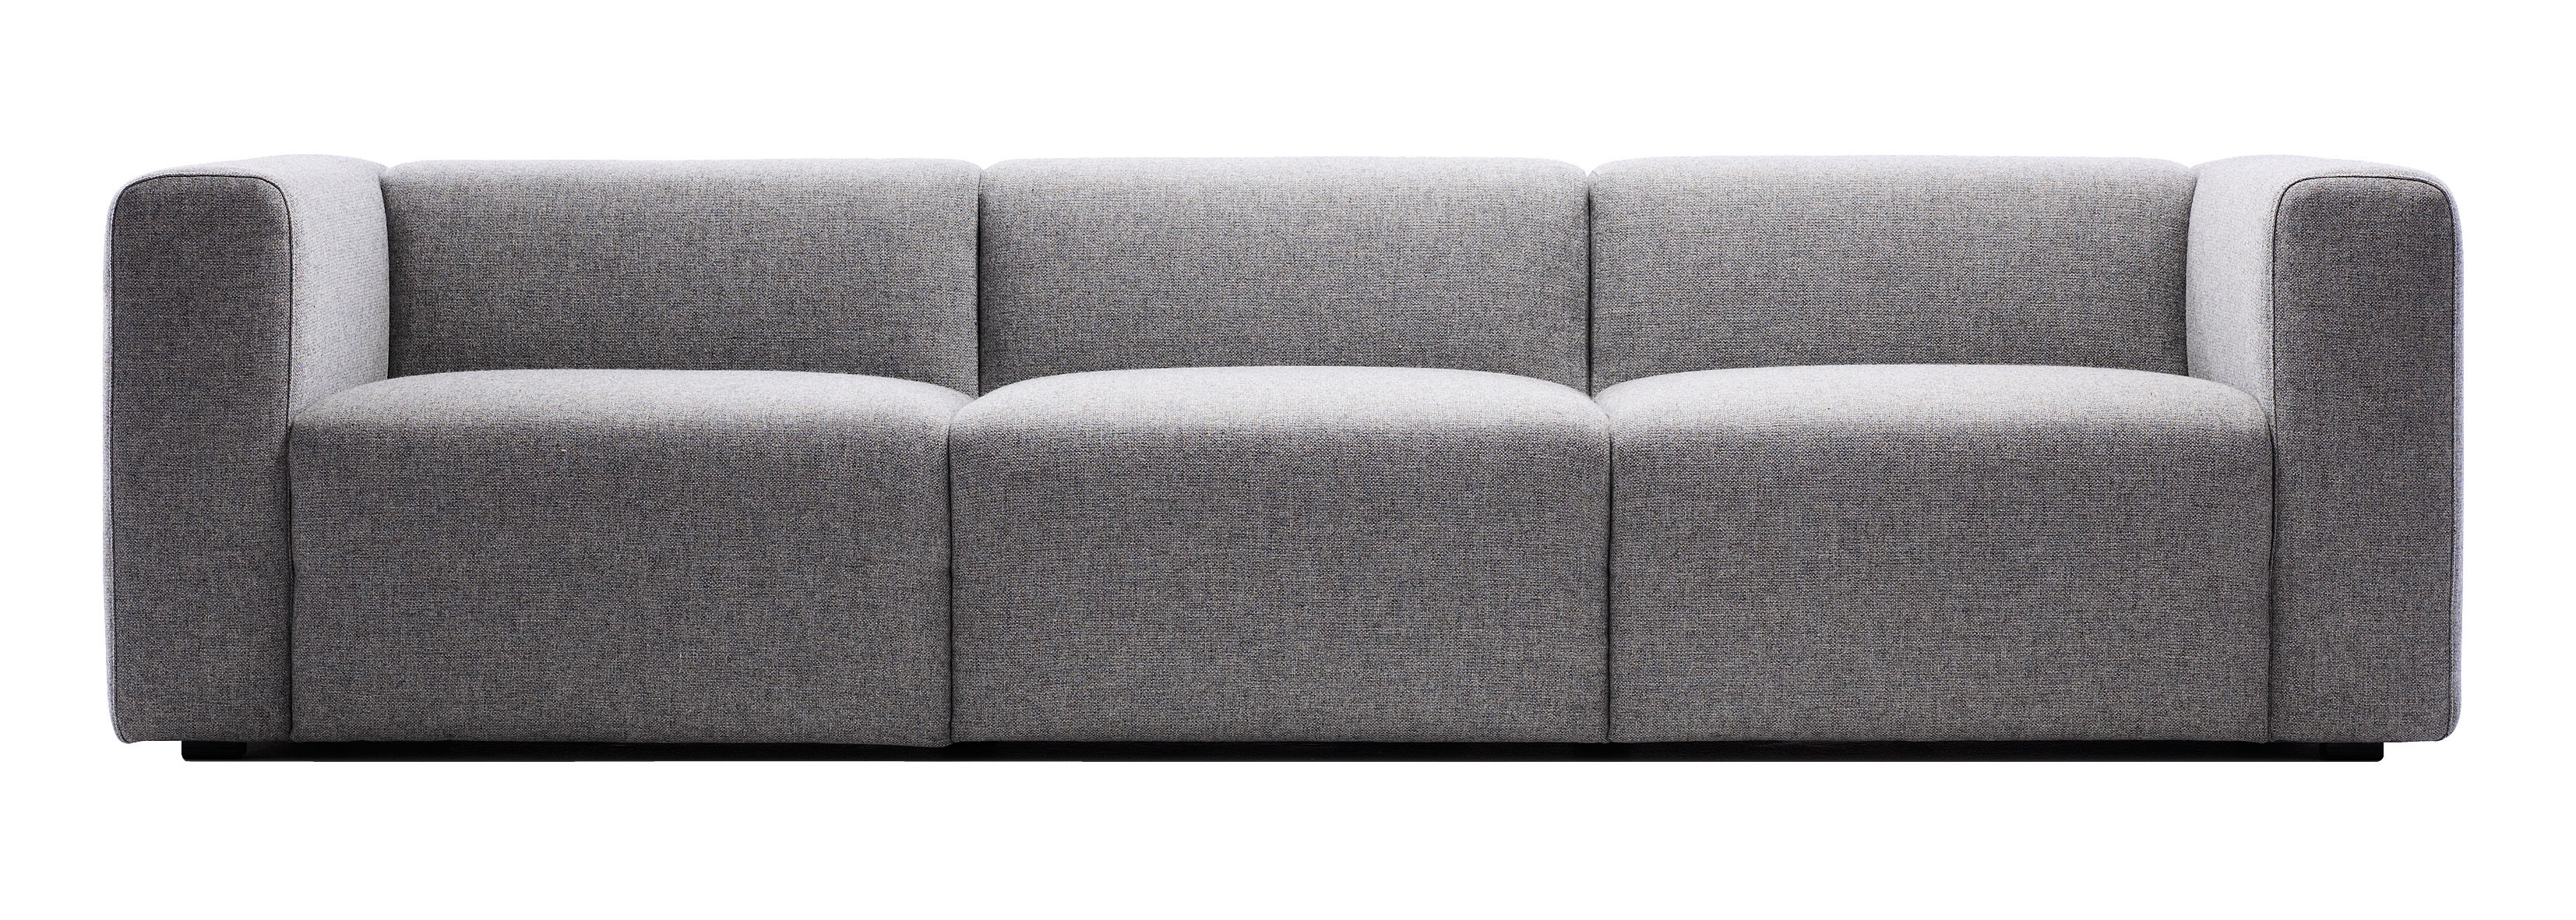 Furniture - Sofas - Mags Straight sofa - 3 seats / L 266 cm -Steelcut trio fabric by Hay - Light grey - Kvadrat fabric